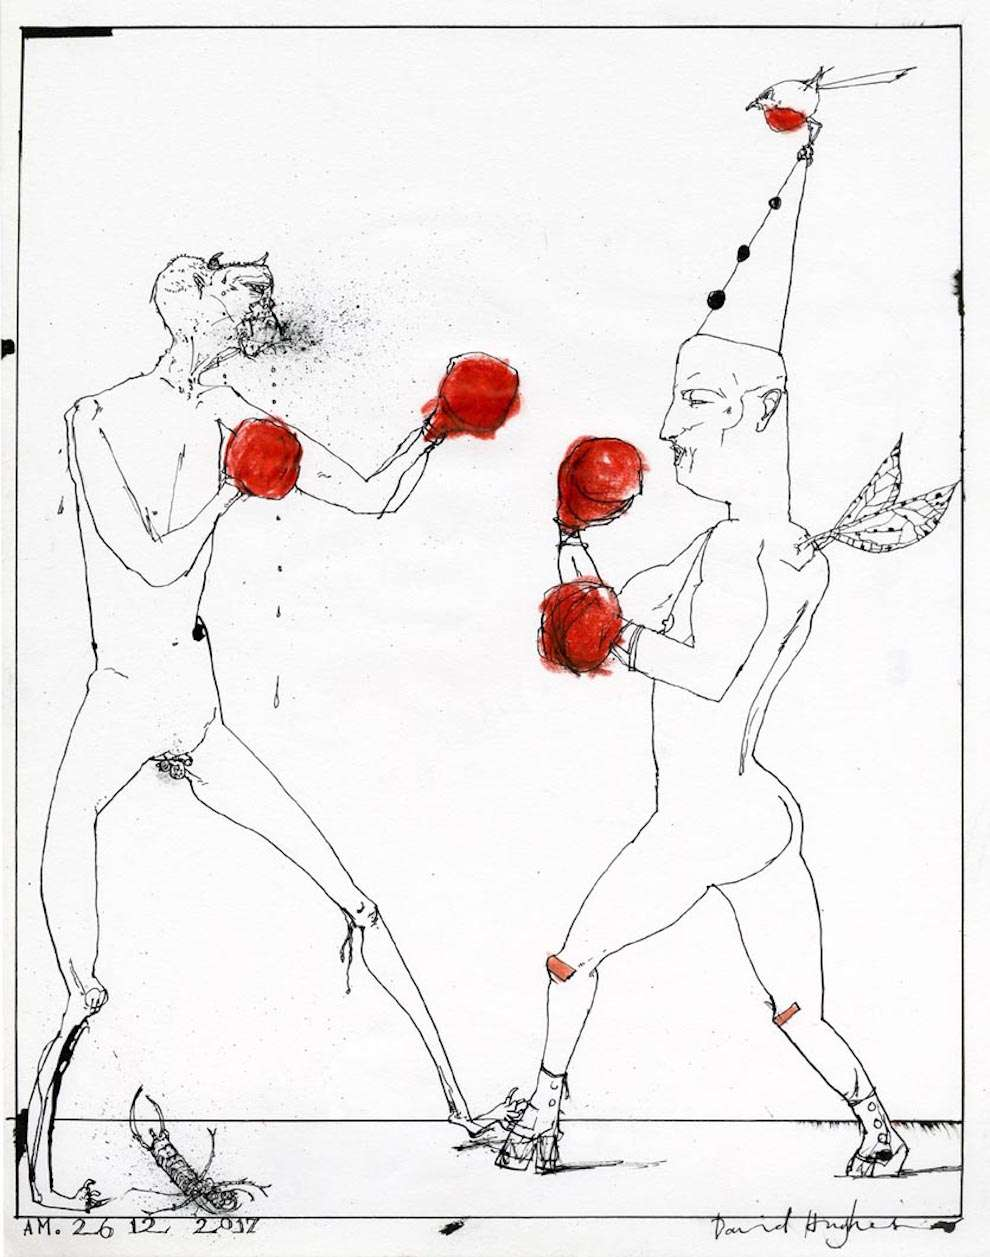 David Hughes, Hand-drawn line illustration of a boxing match between a man with a satan's head and another man with a birthday hat and fairies wings.